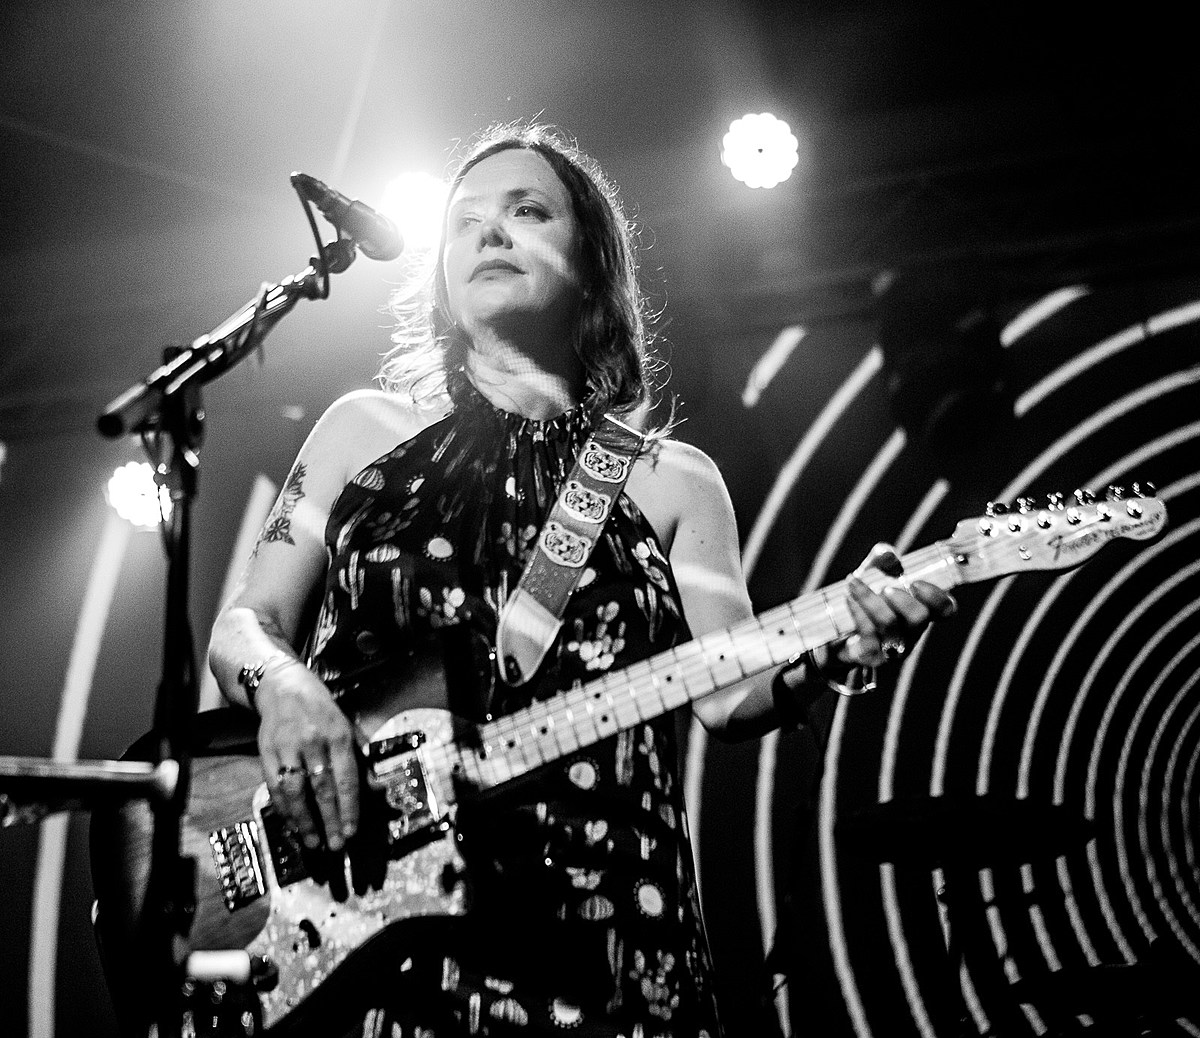 Slowdive's Rachel Goswell organized charity auction ft. items from MBV, The Cure, more